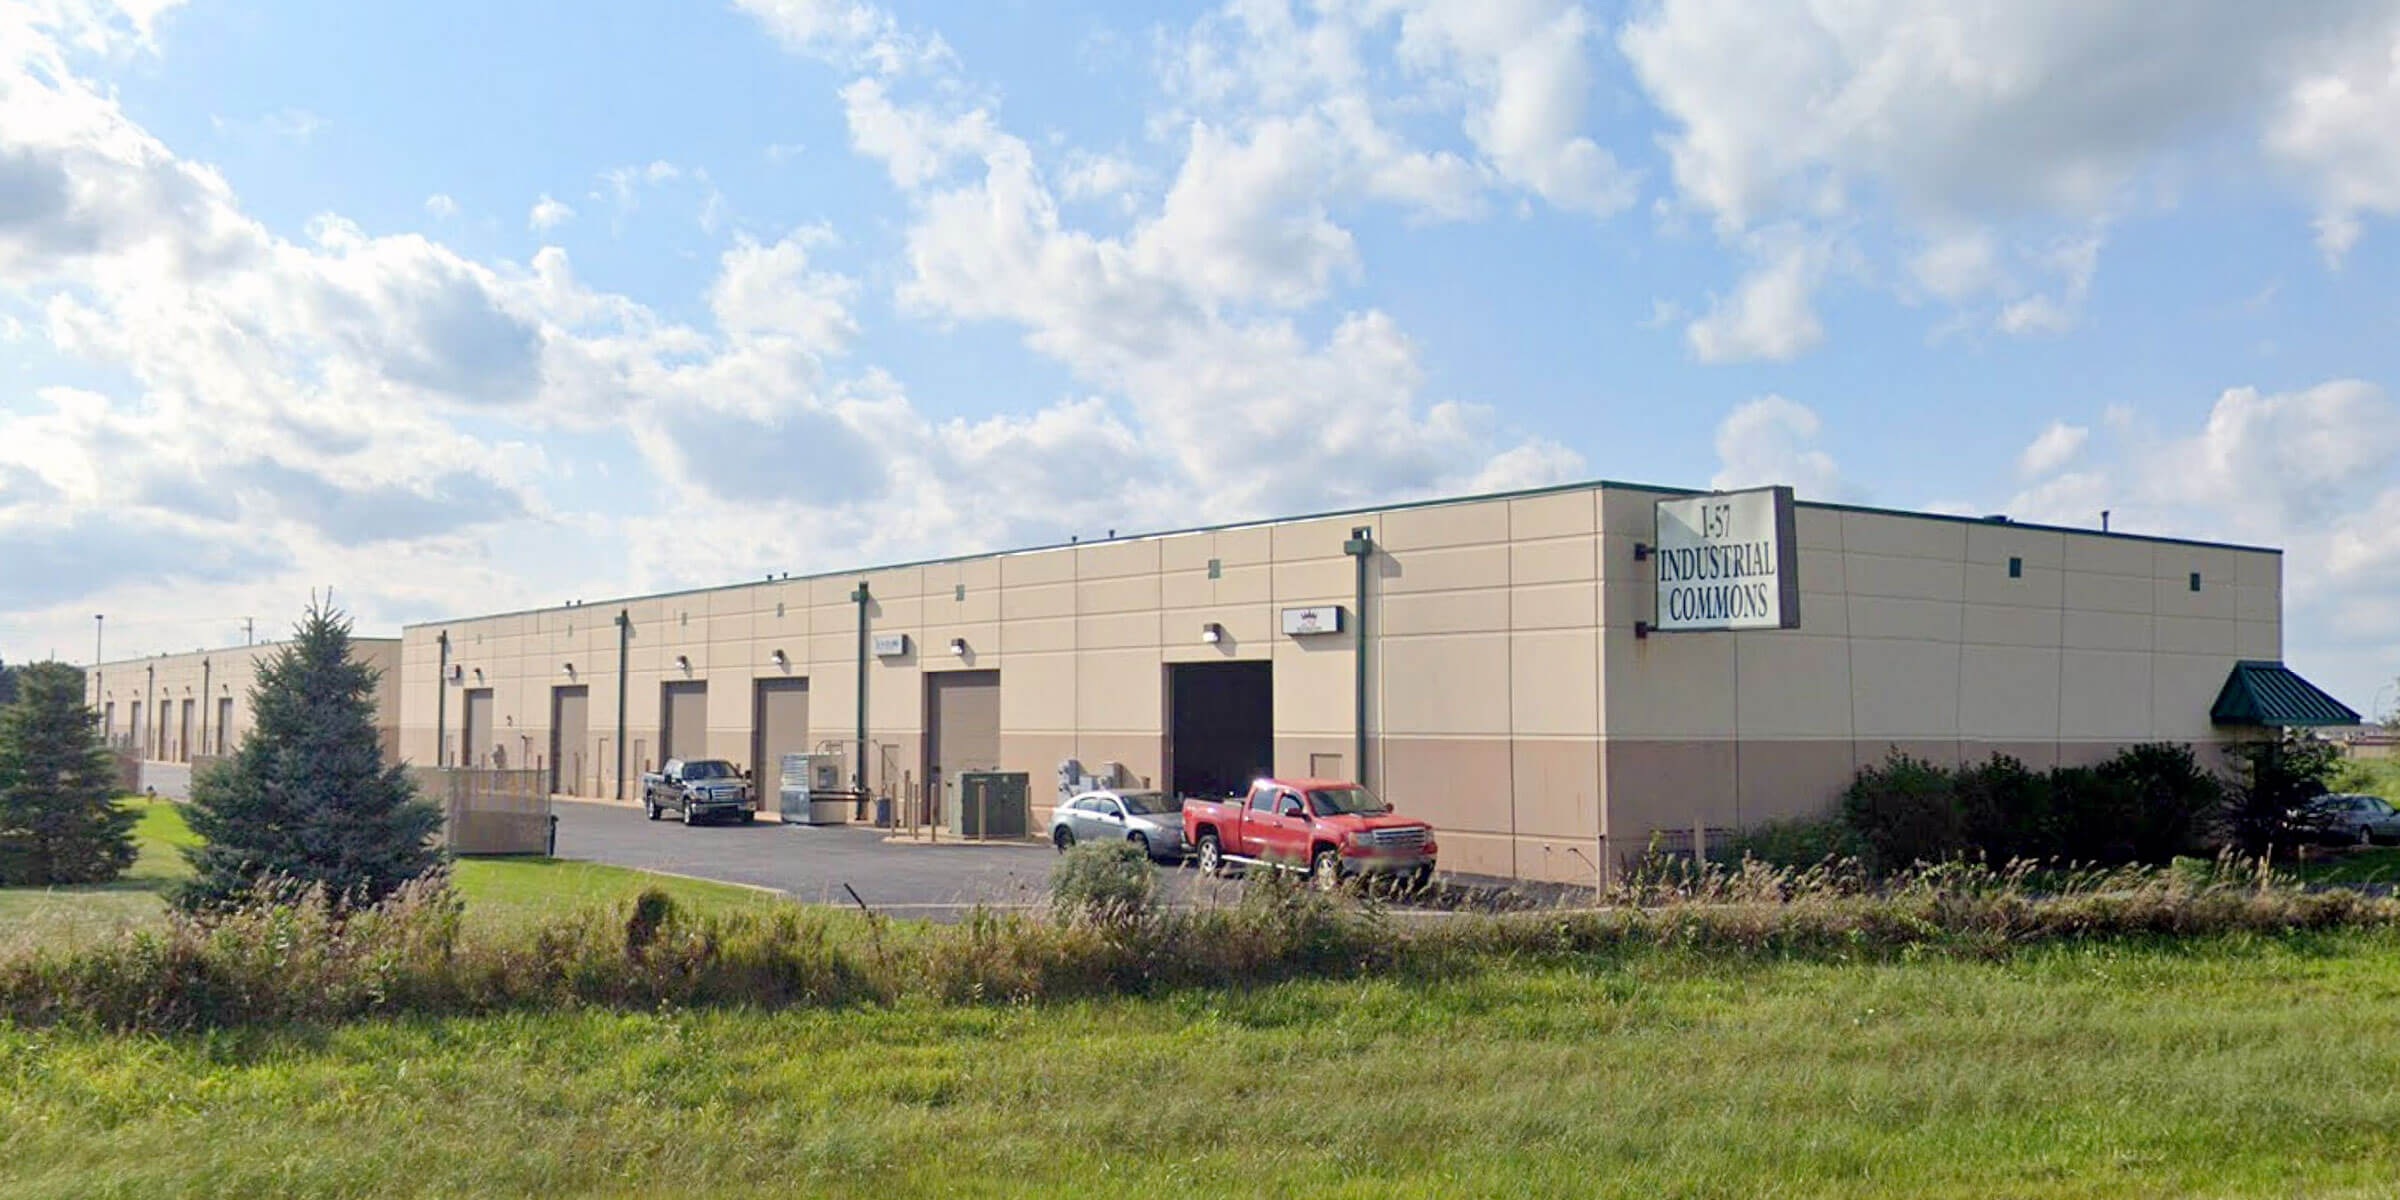 Outside the I-57 Industrial Commons where Beer Steam Hollow Brewing Co. is located in Manteno, Illinois